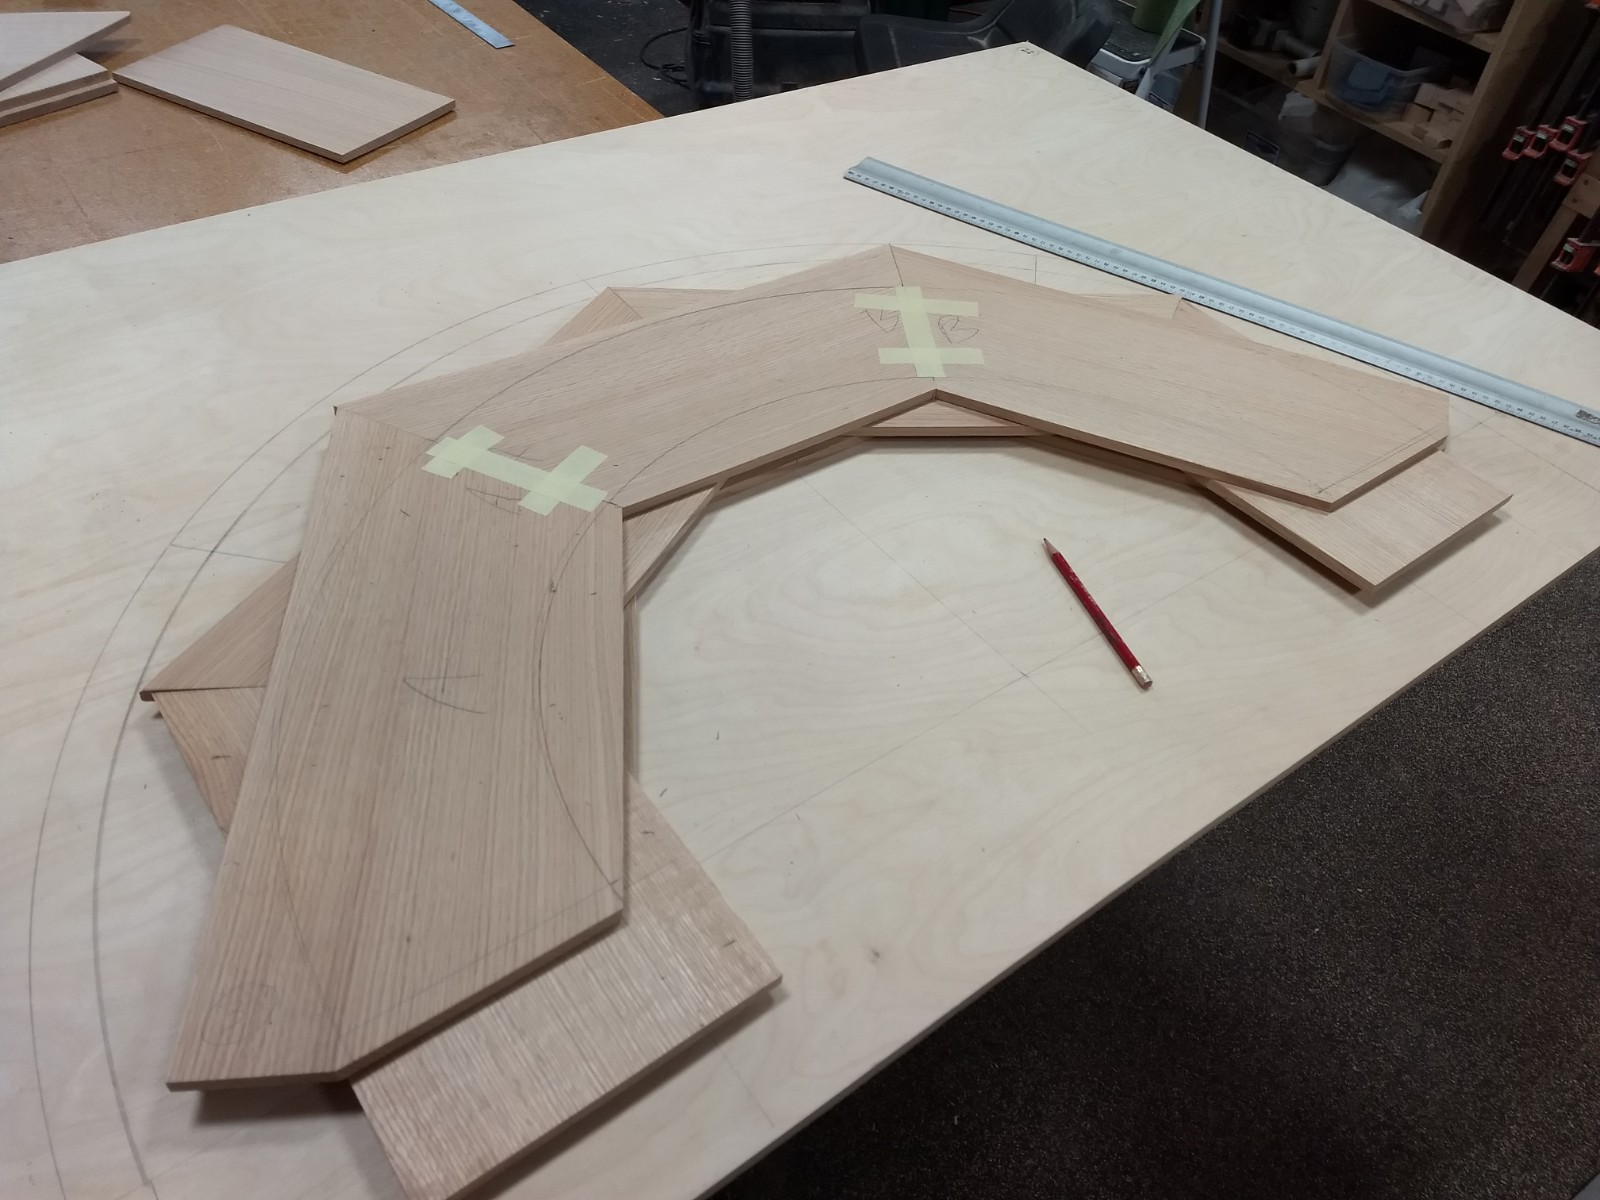 Laying out ply layers